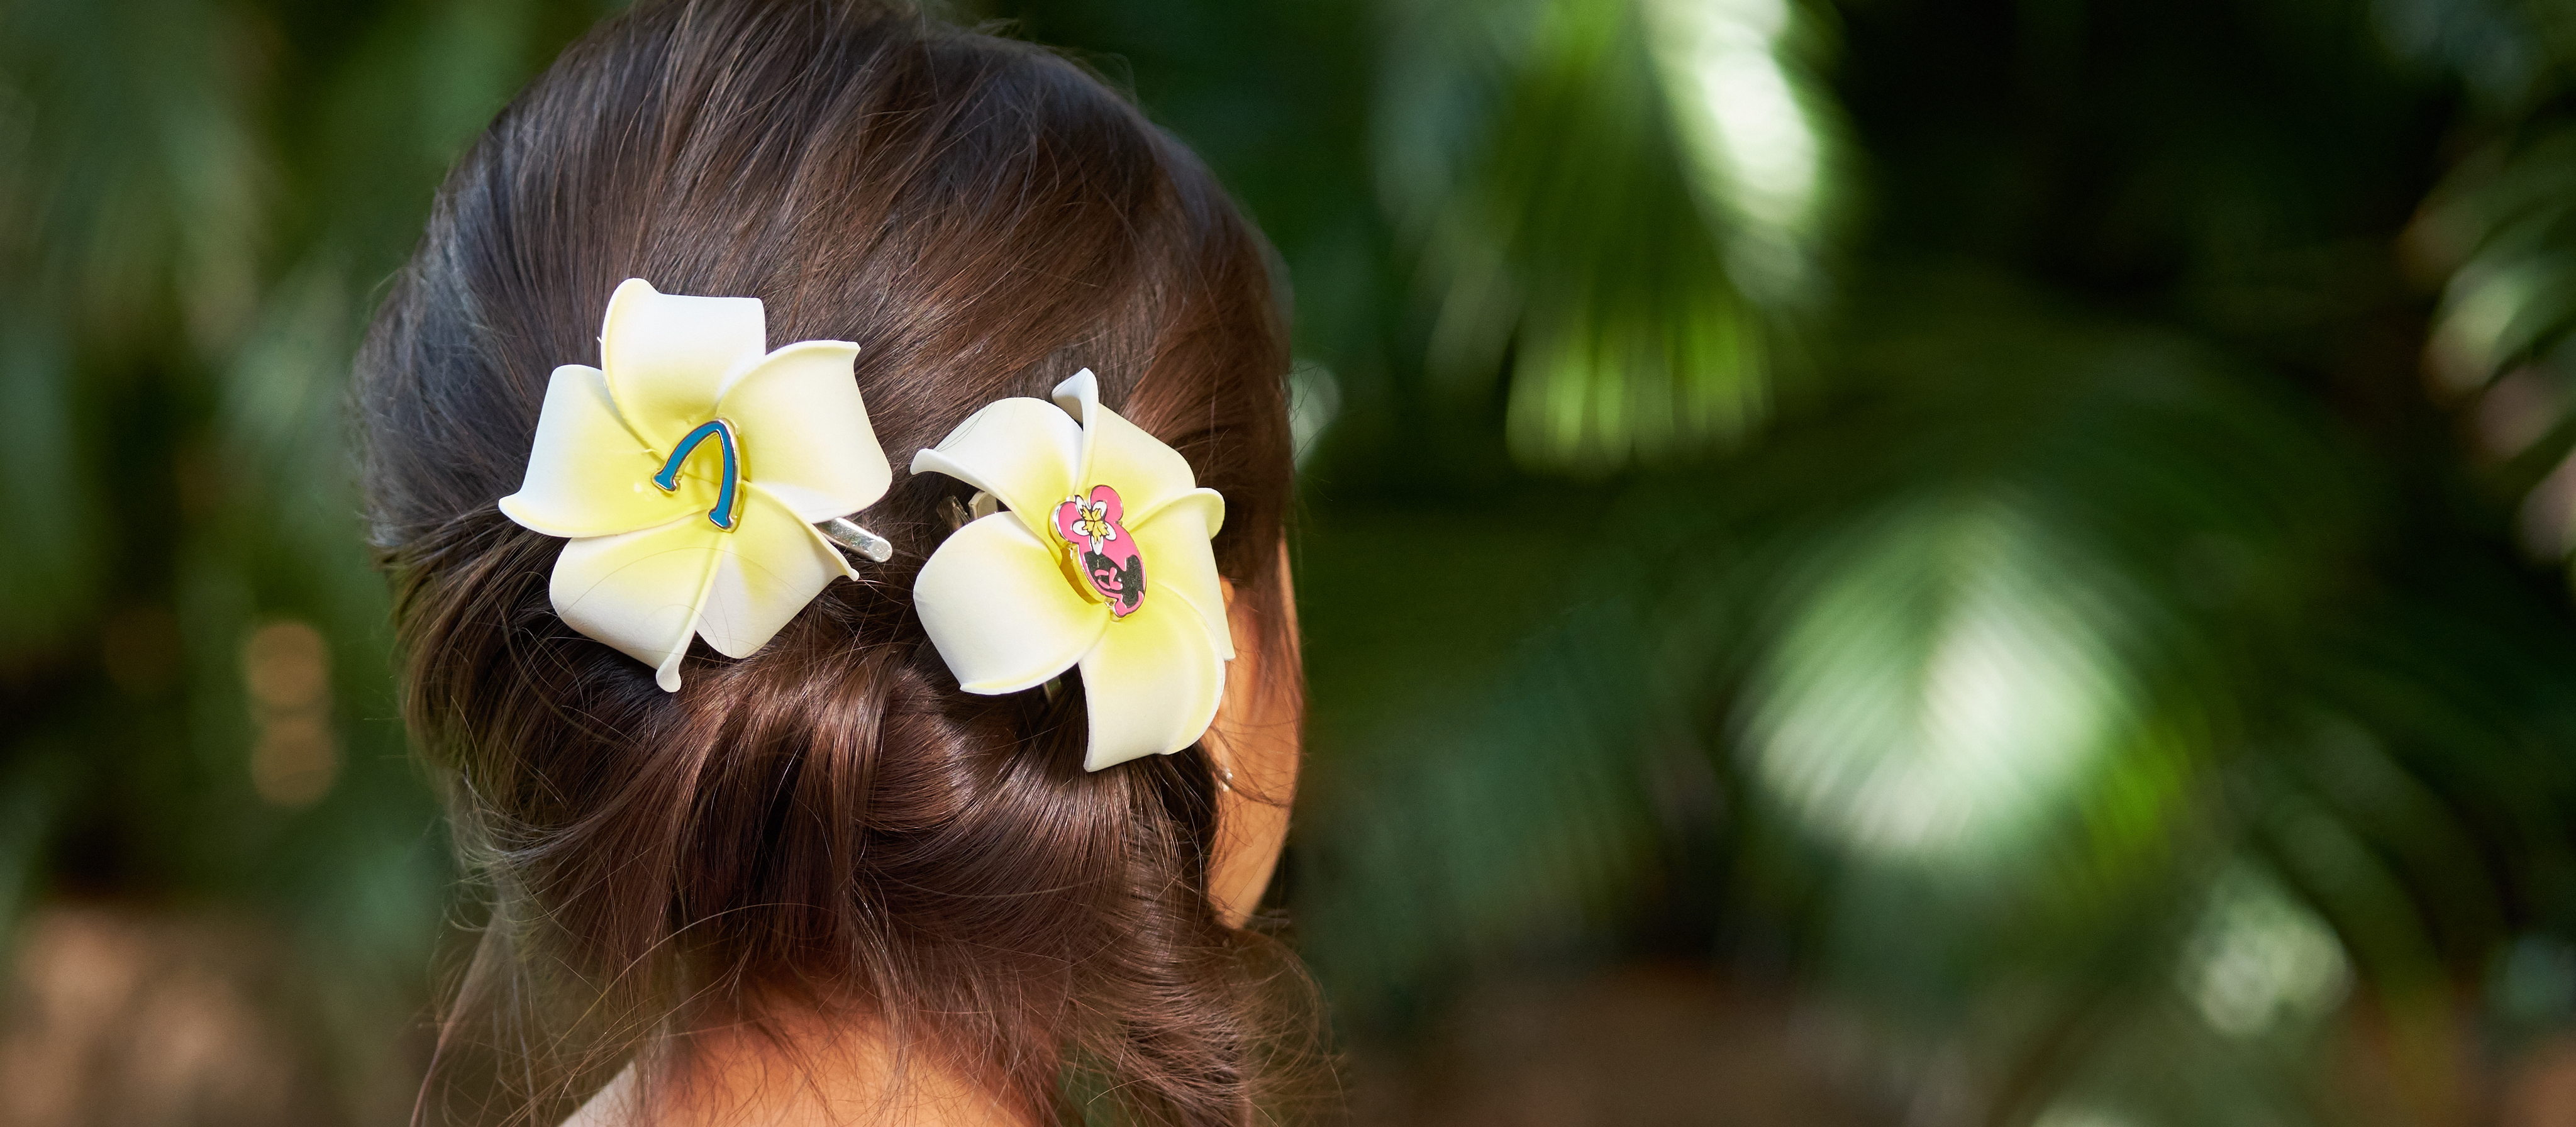 Two Aulani-themed flower clips worn on the back of a young girl's hair